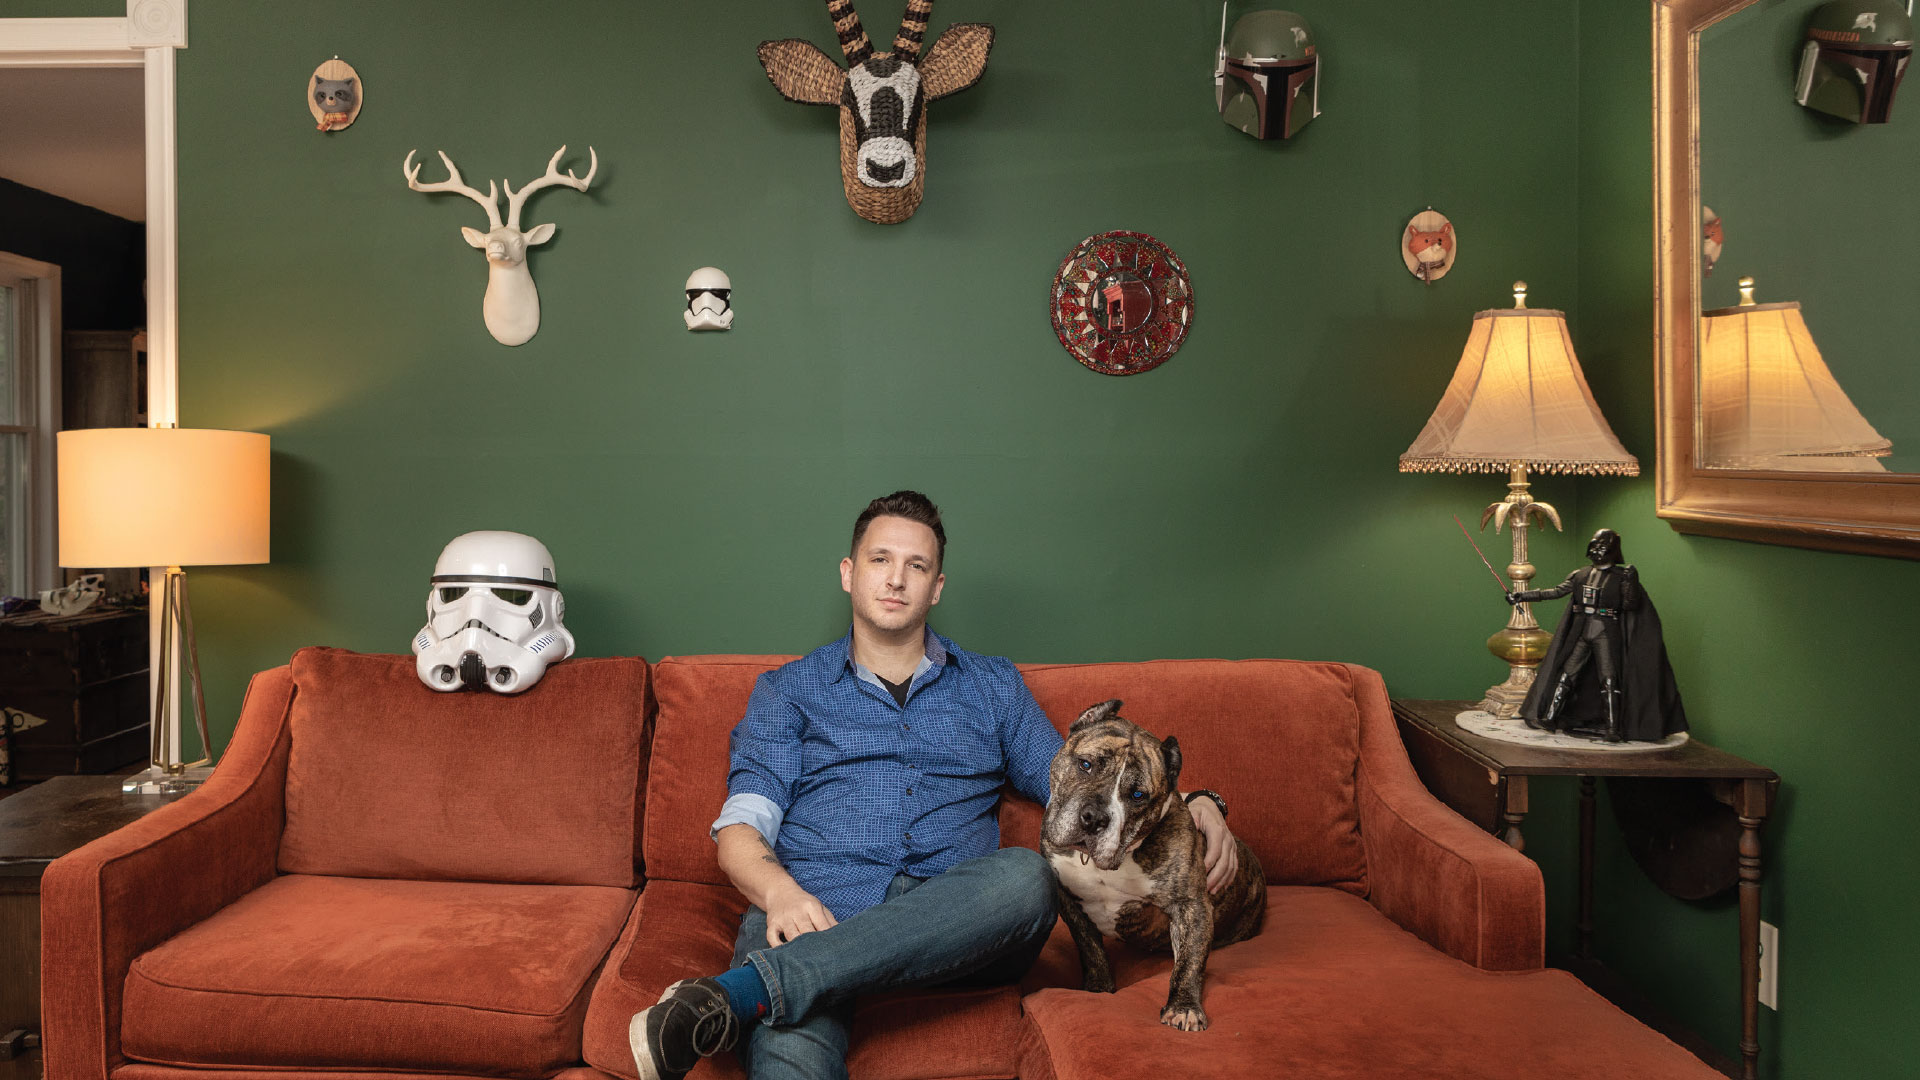 Tony Turetsky is photographed on a red couch against a green wall with his dog.